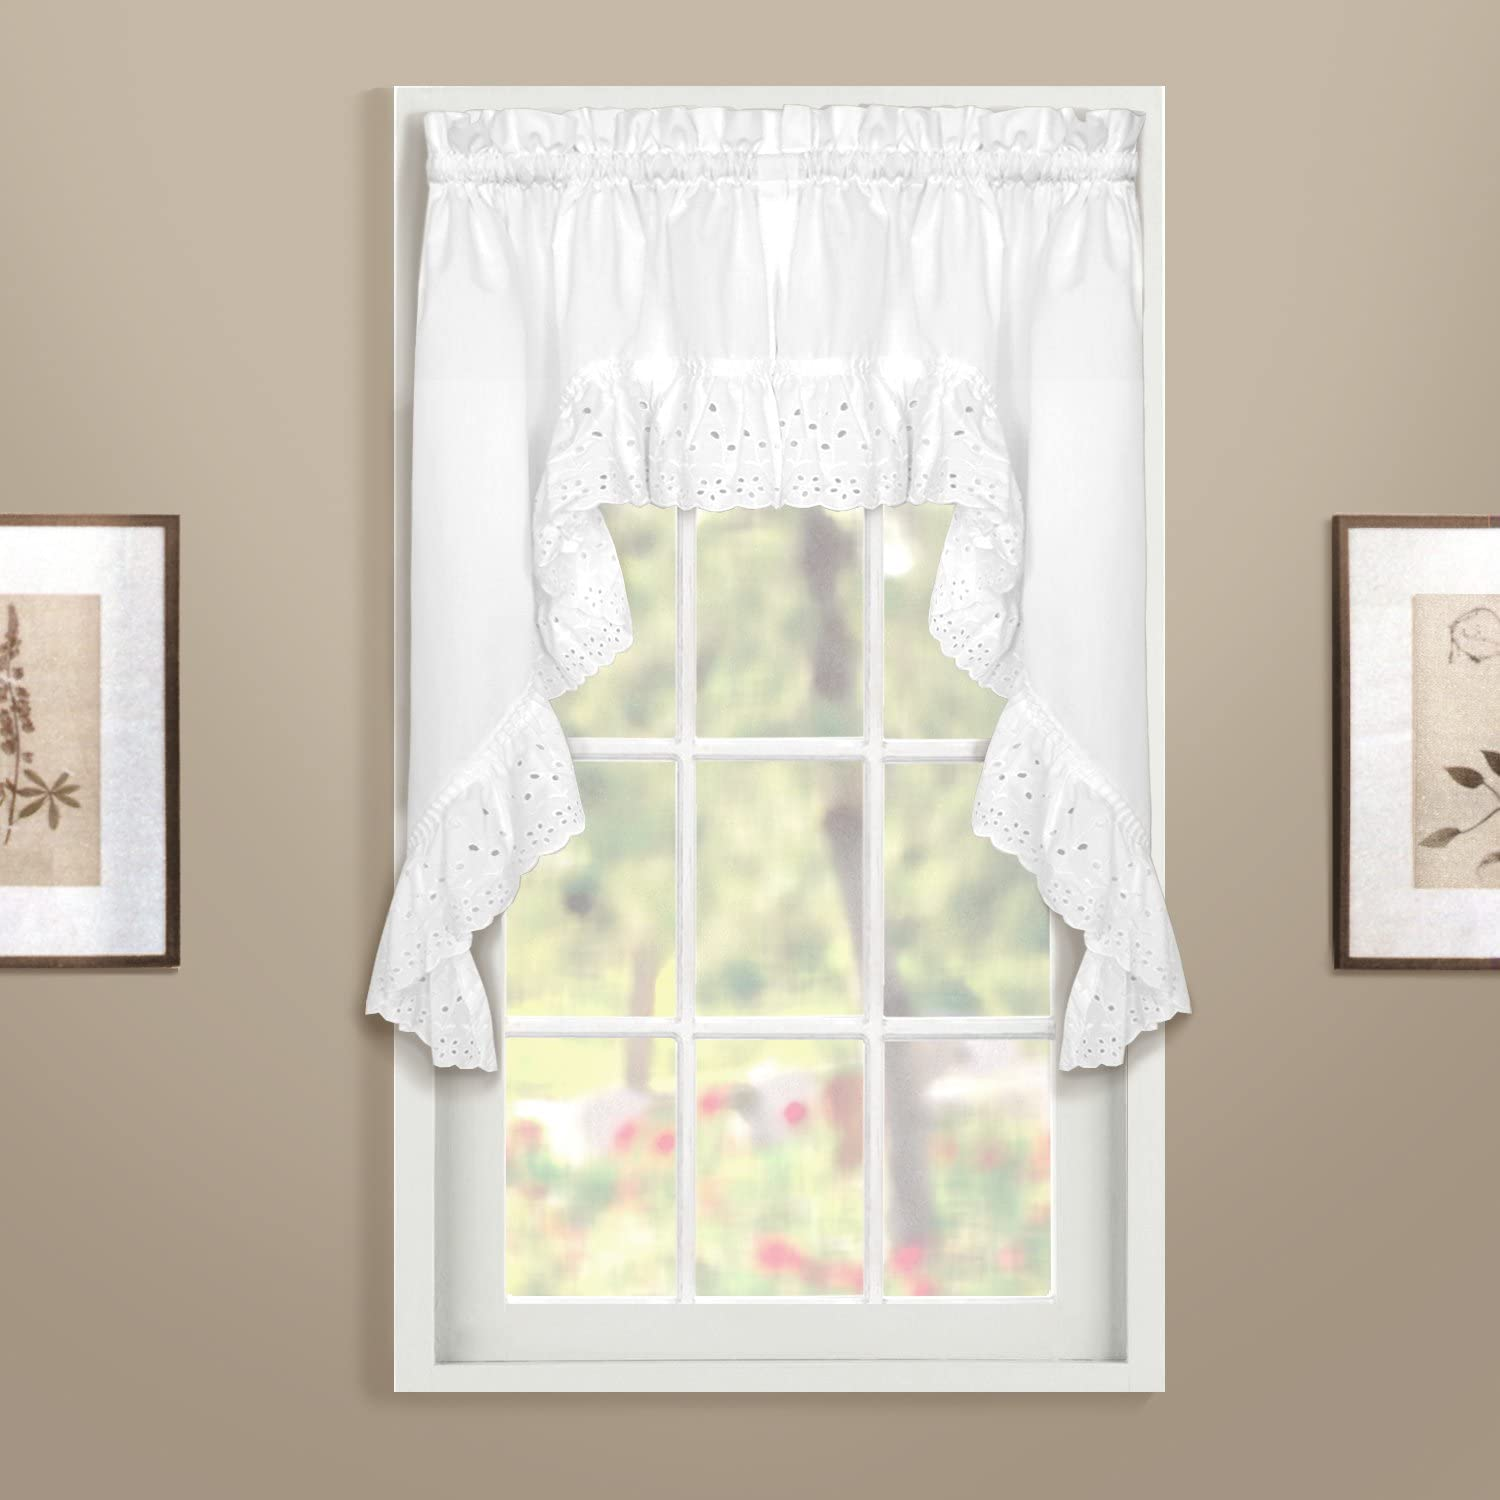 60 by 38-Inch Set of 2 Natural United Curtain Vienna Lace Swags